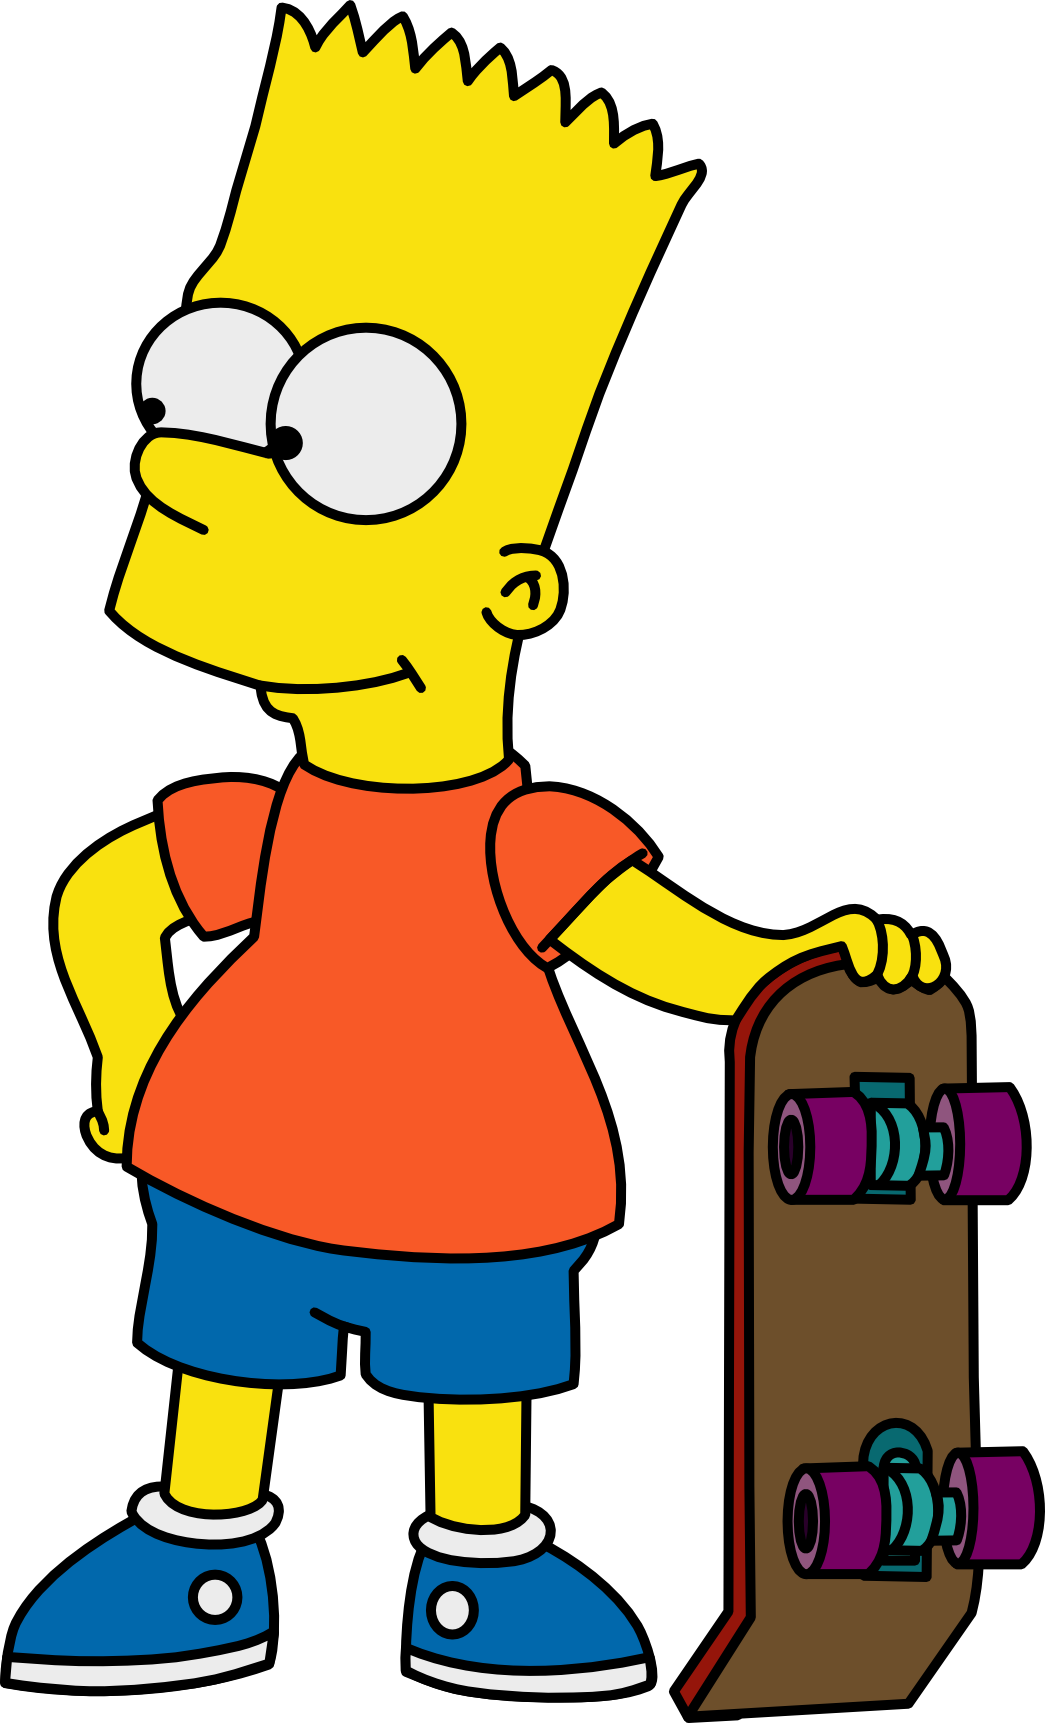 Bart Simpson Png image #39259